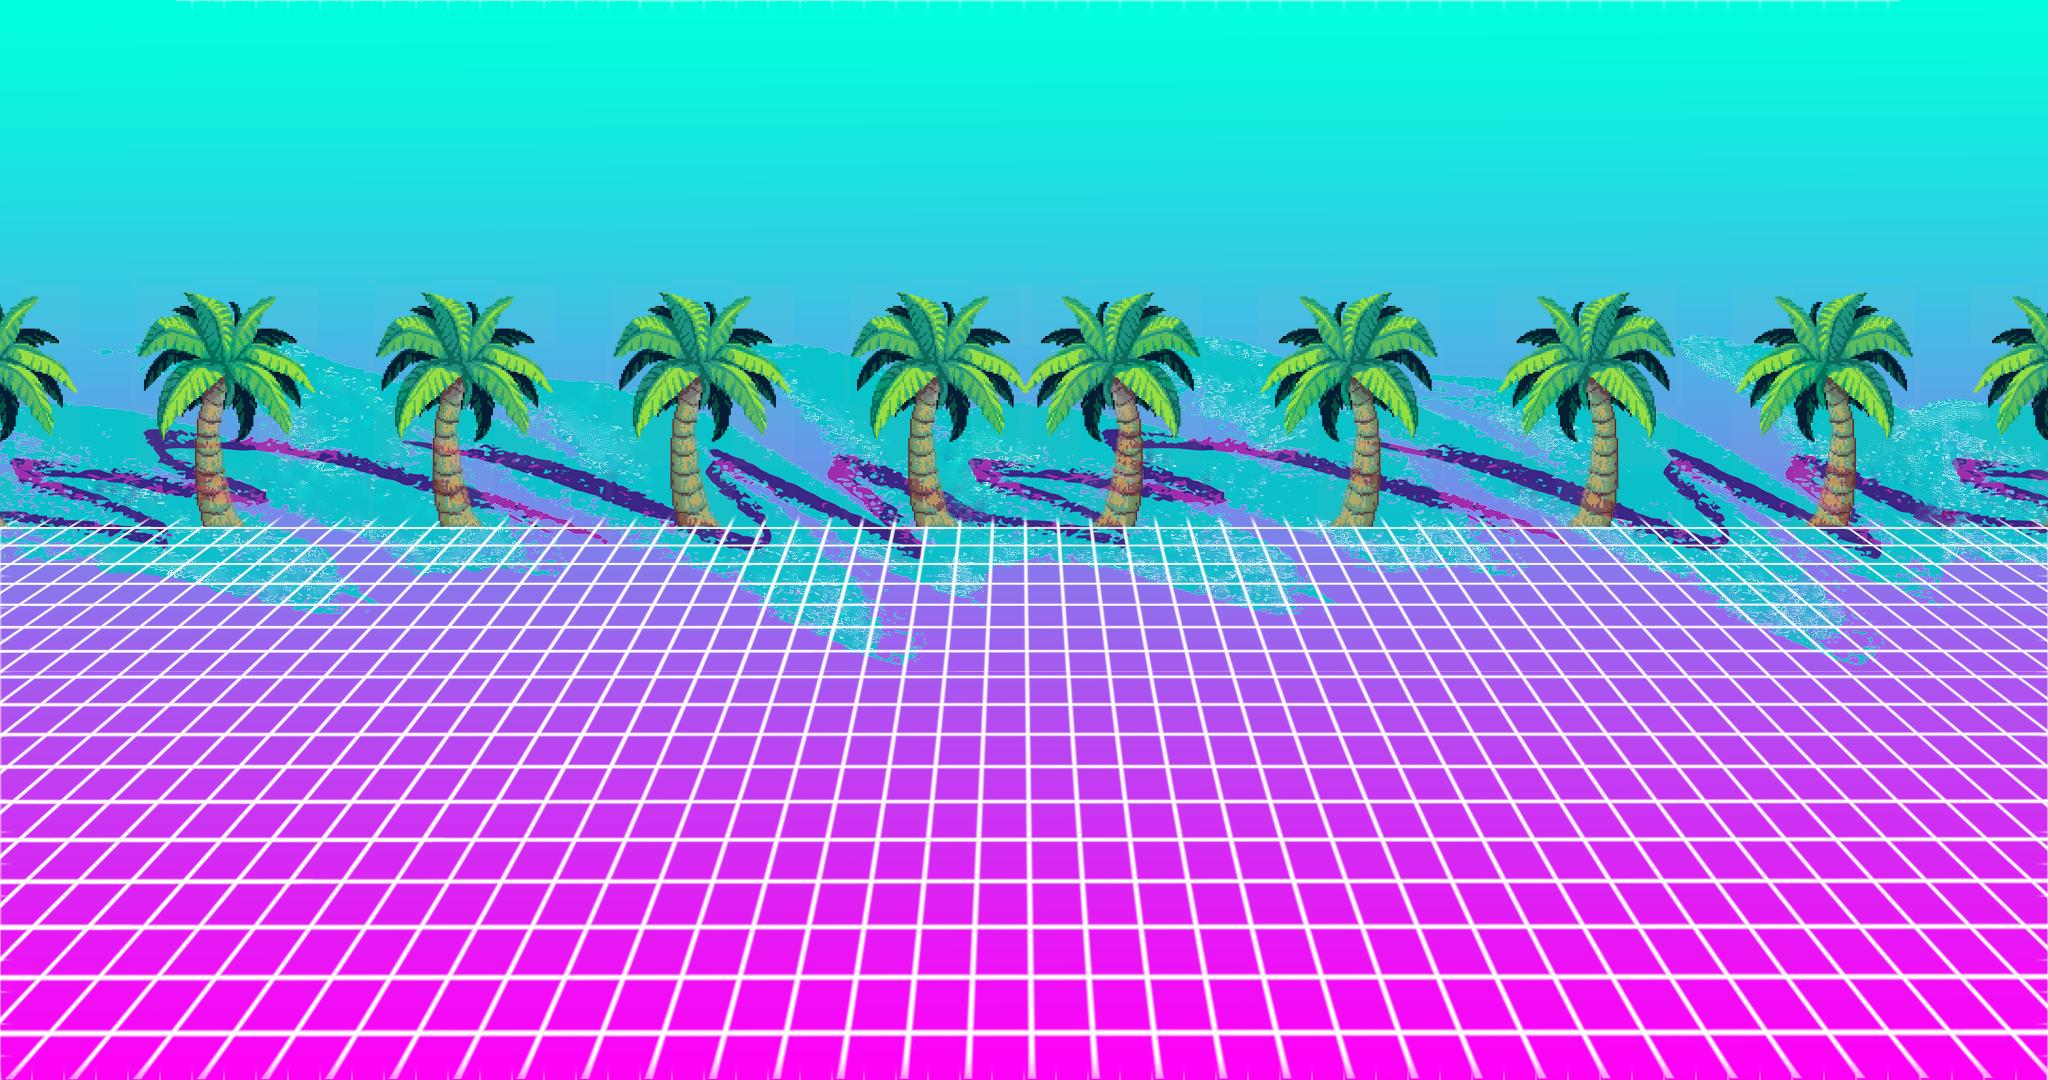 Calm-Palm-vaporwave-x1080-background-for-iPad-mini-air-pro-laptop-dquocbuu-wallpaper-wpc9003303